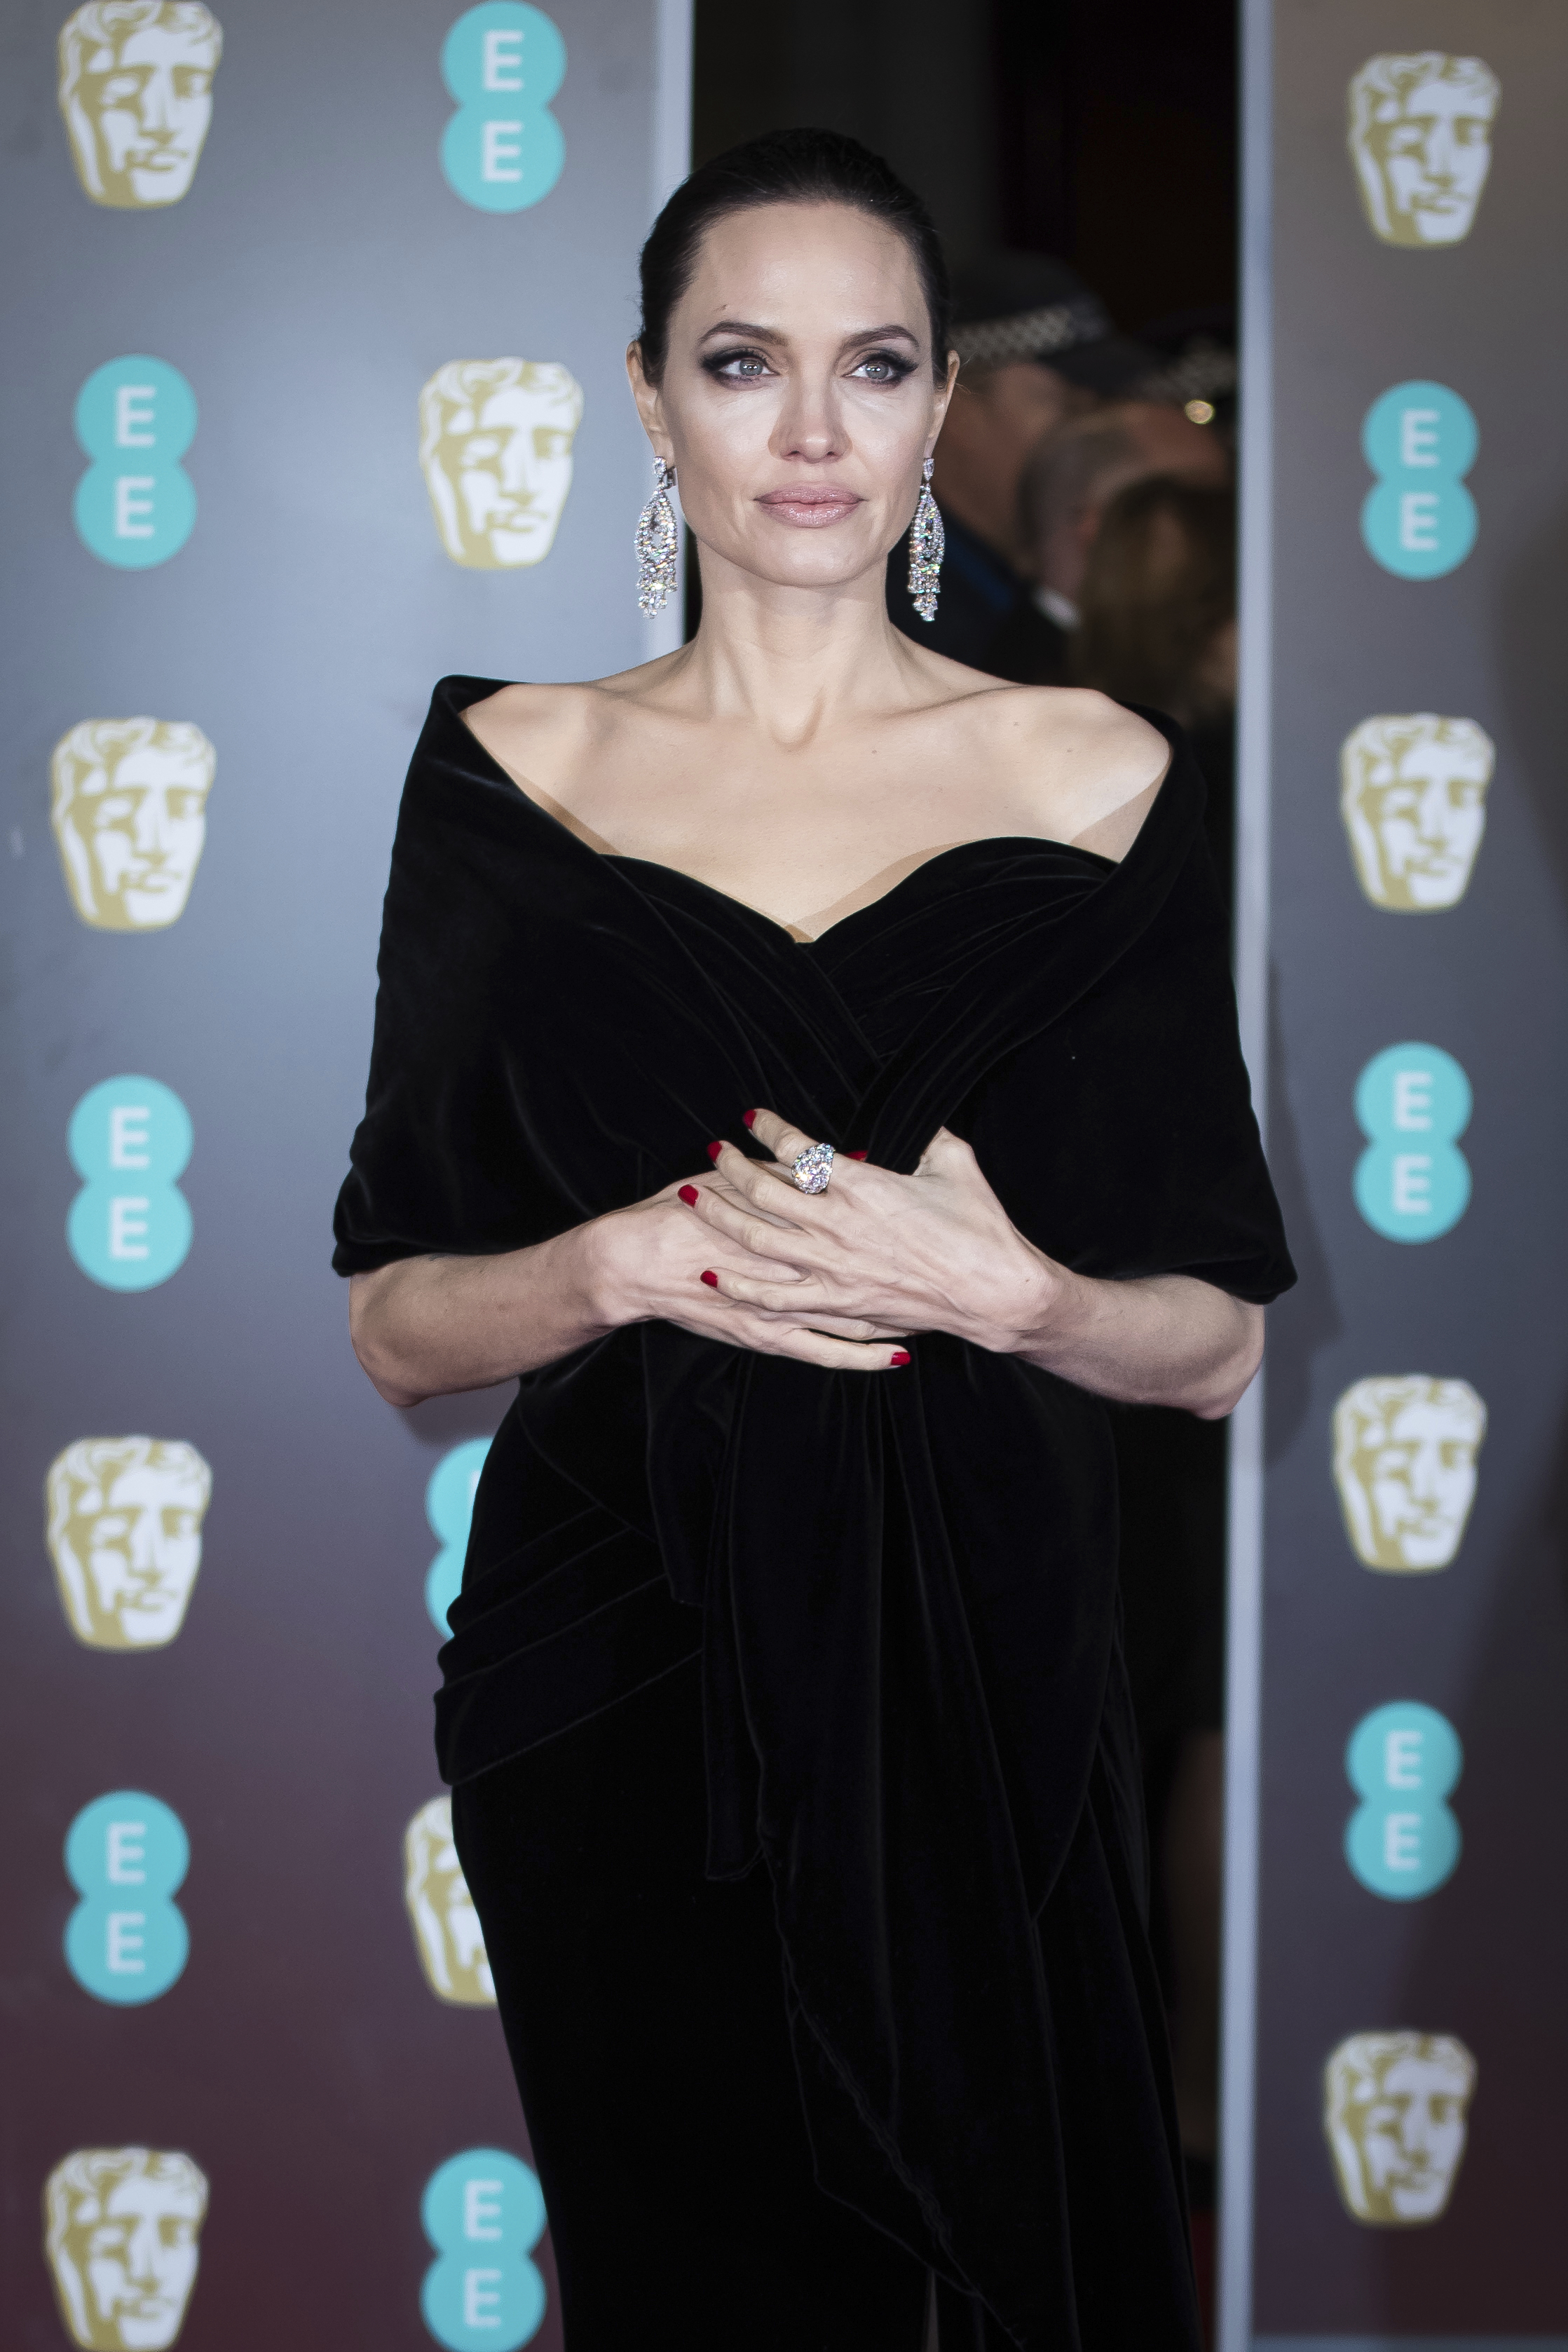 <div class='meta'><div class='origin-logo' data-origin='AP'></div><span class='caption-text' data-credit='Vianney Le Caer/Invision/AP'>Angelina Jolie poses for photographers upon arrival at the BAFTA Film Awards, in London, Sunday, Feb. 18, 2018.</span></div>